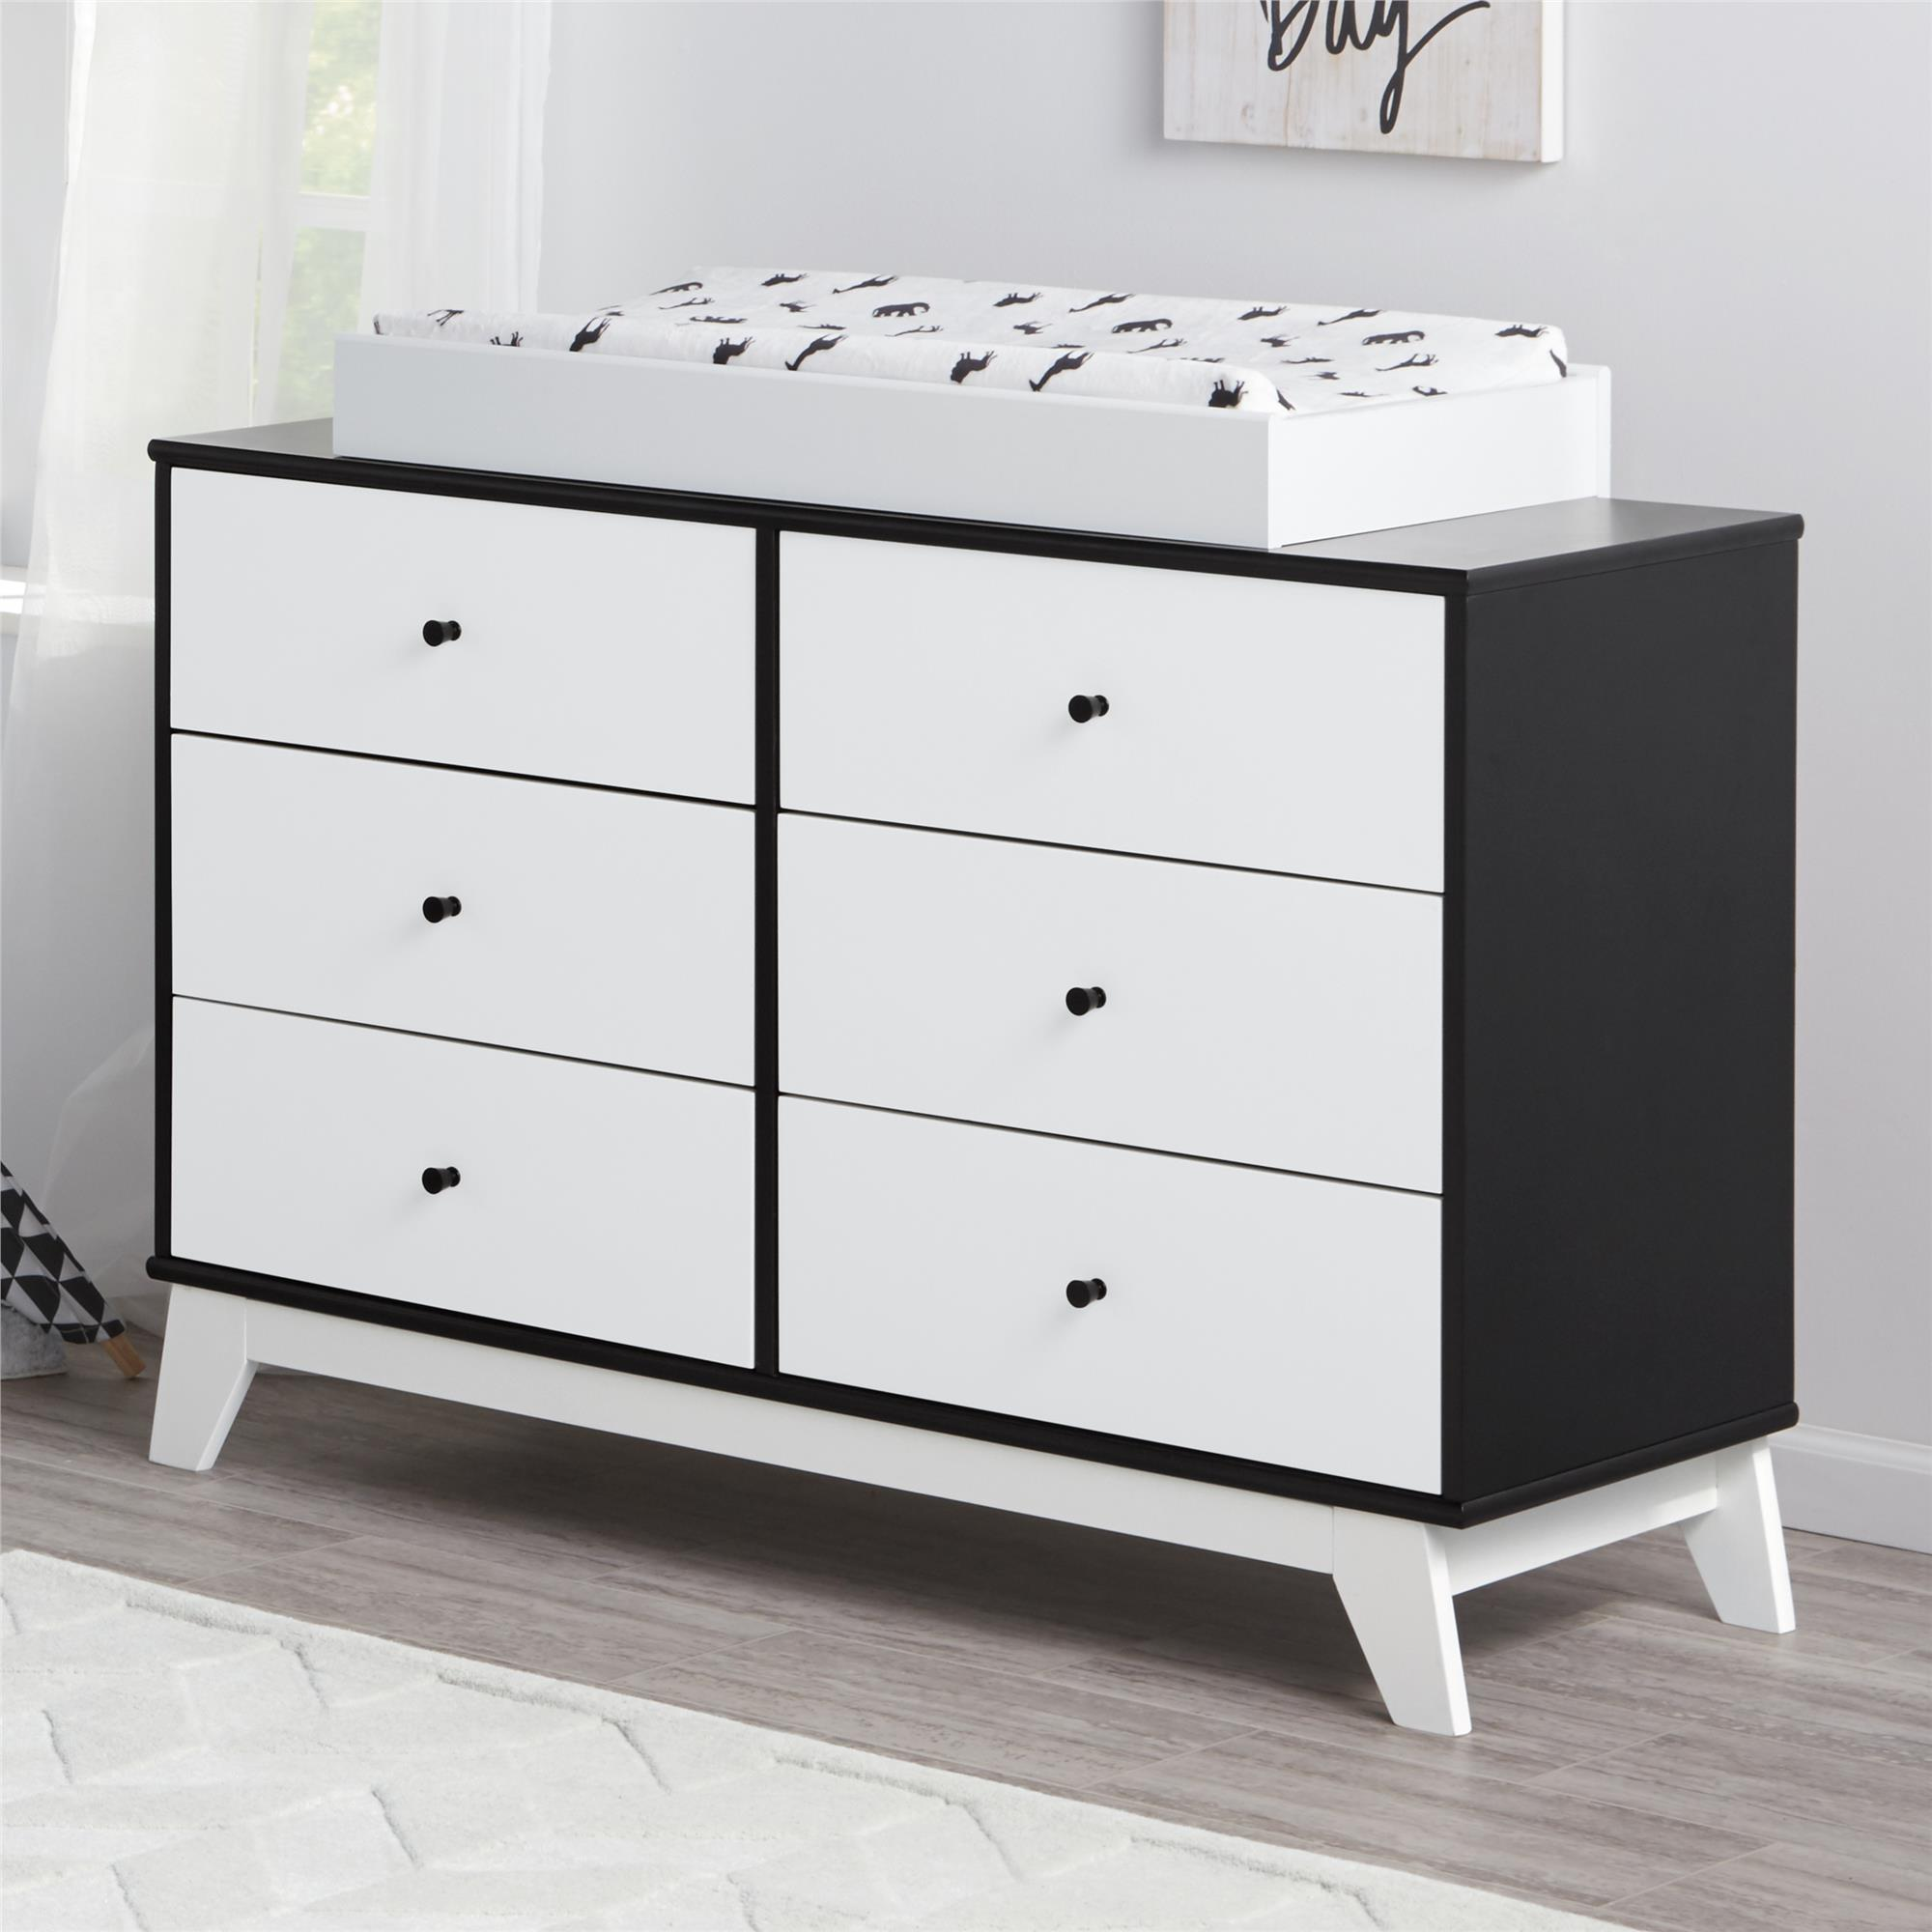 Changing Table Chest Of Drawers Little Seeds Rowan Valley Flint 6 Drawer Changing Table